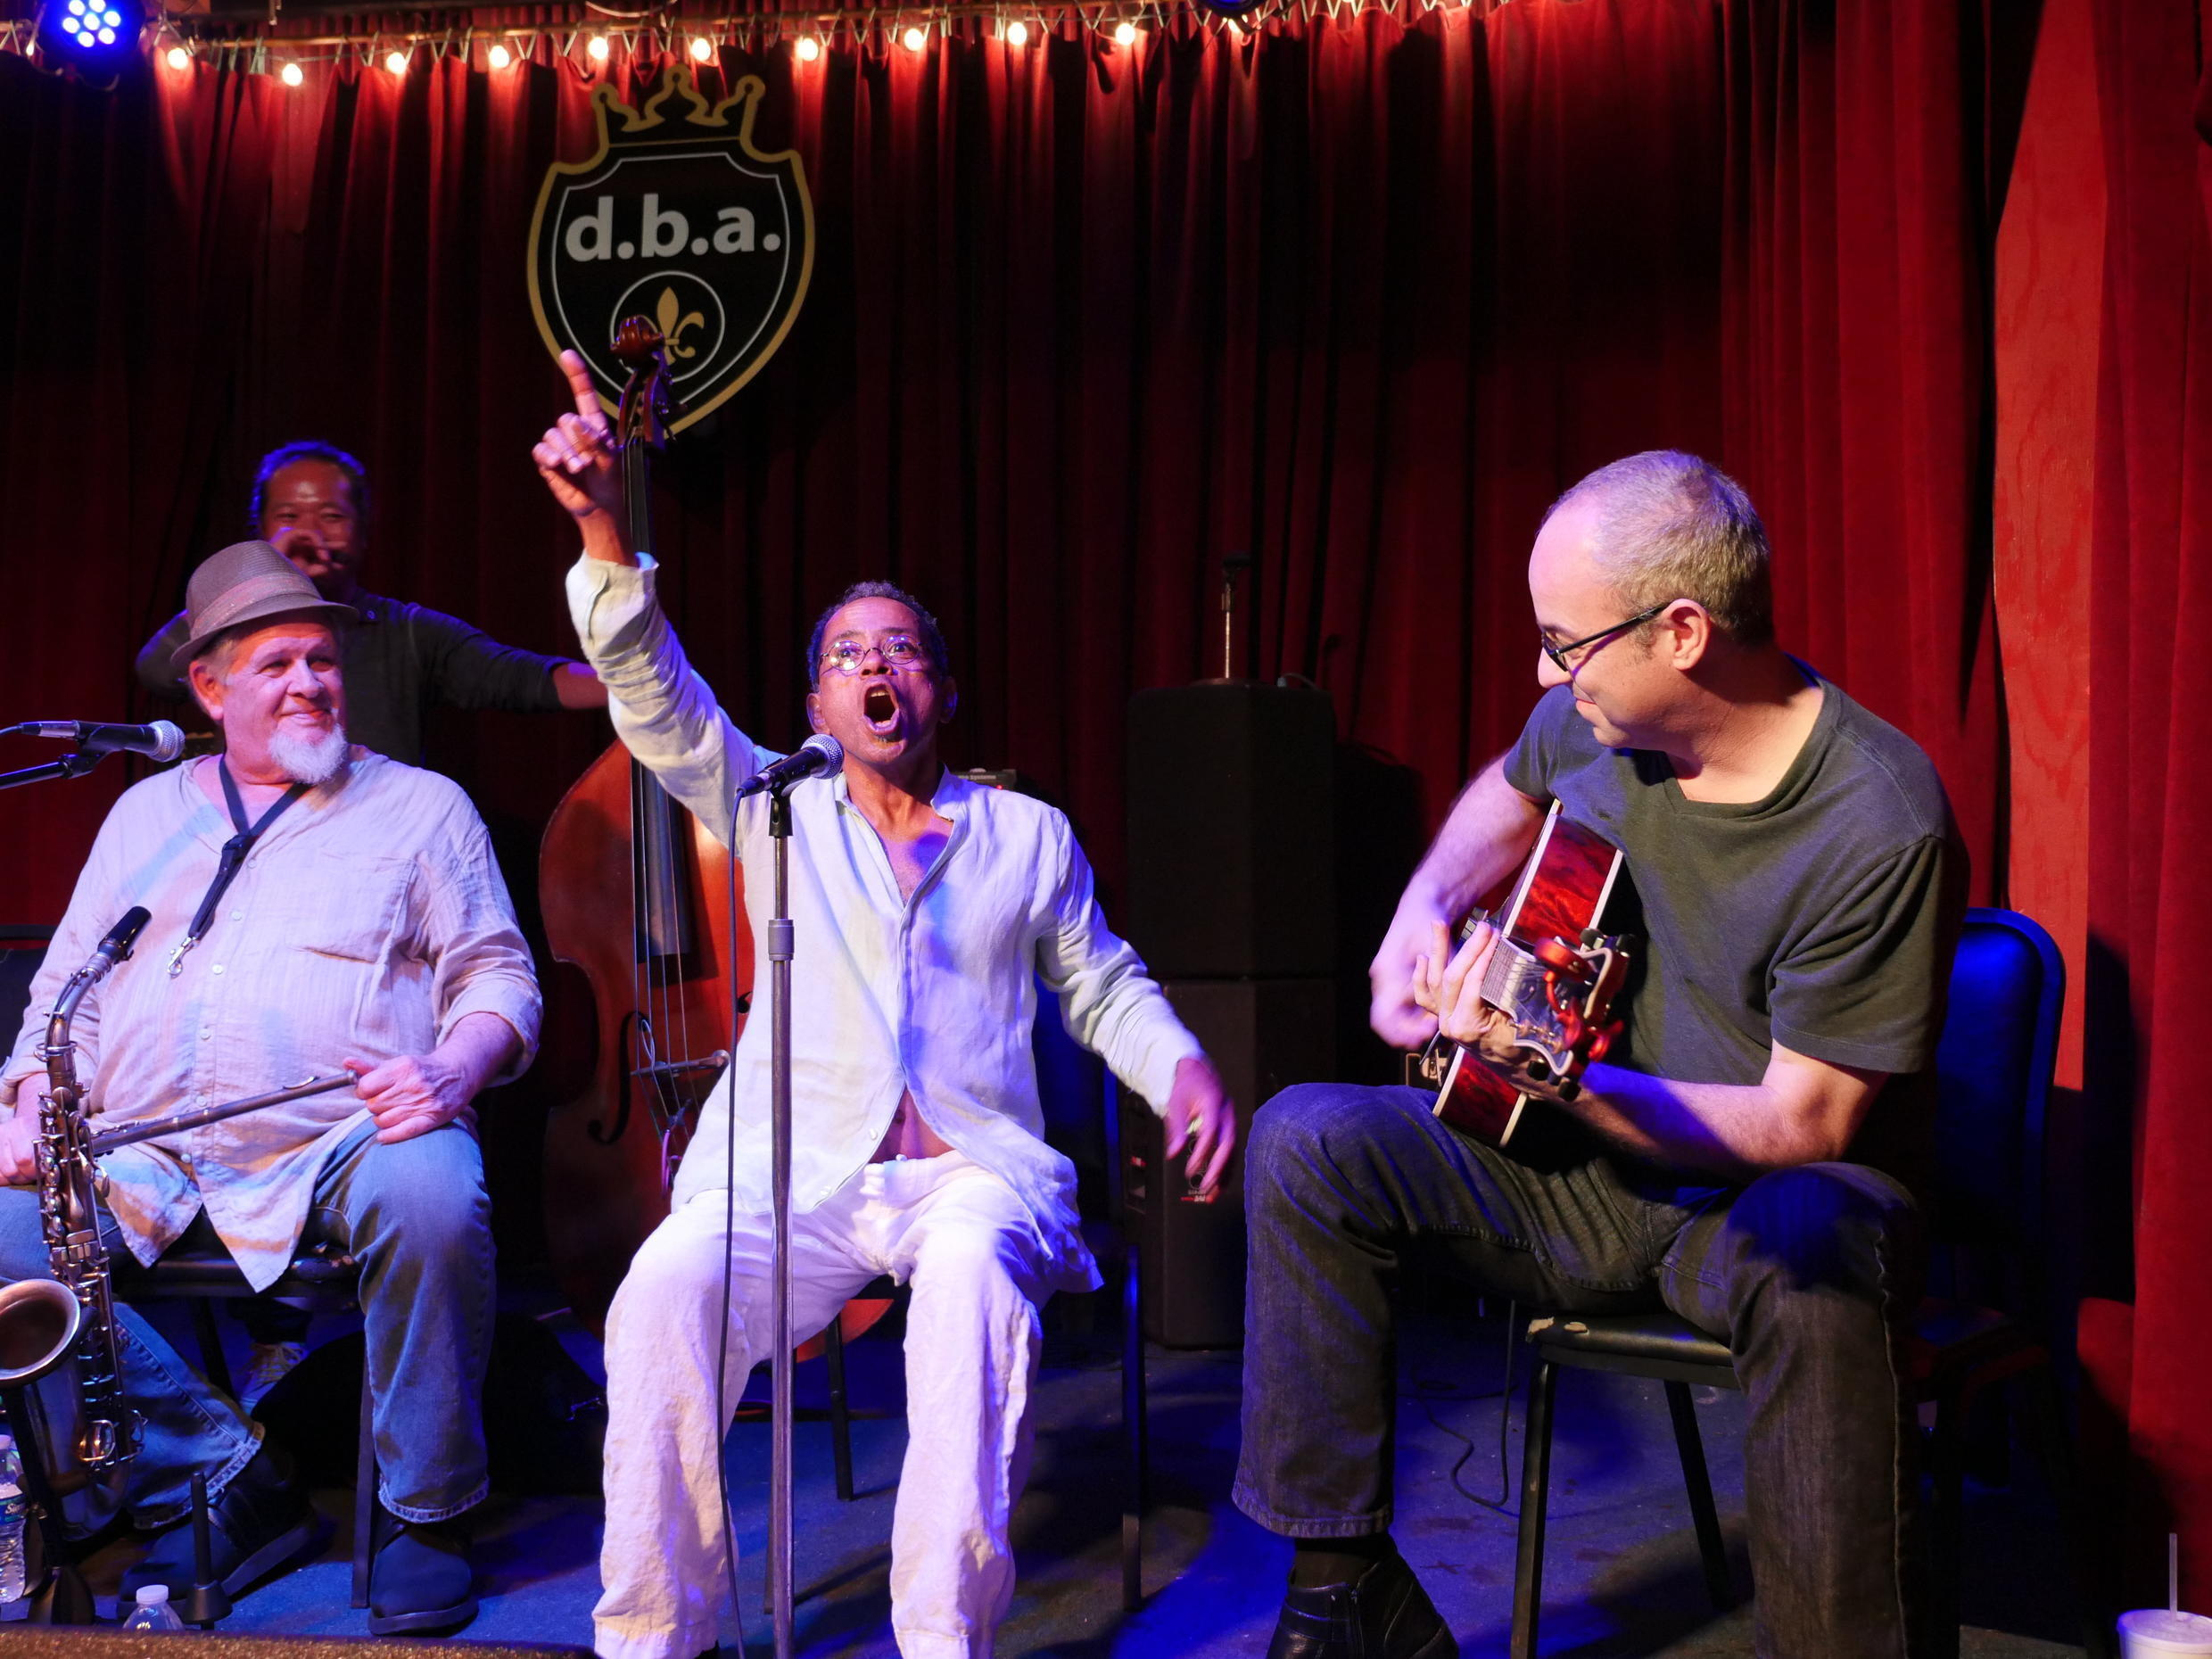 """Jazz vocalist John Boutté and band performing at DBA, Frenchmen Street. The local legend appeared in David Simon's HBO series """"Tremé"""" and wrote the show's opening theme, """"The Tremé Song""""."""